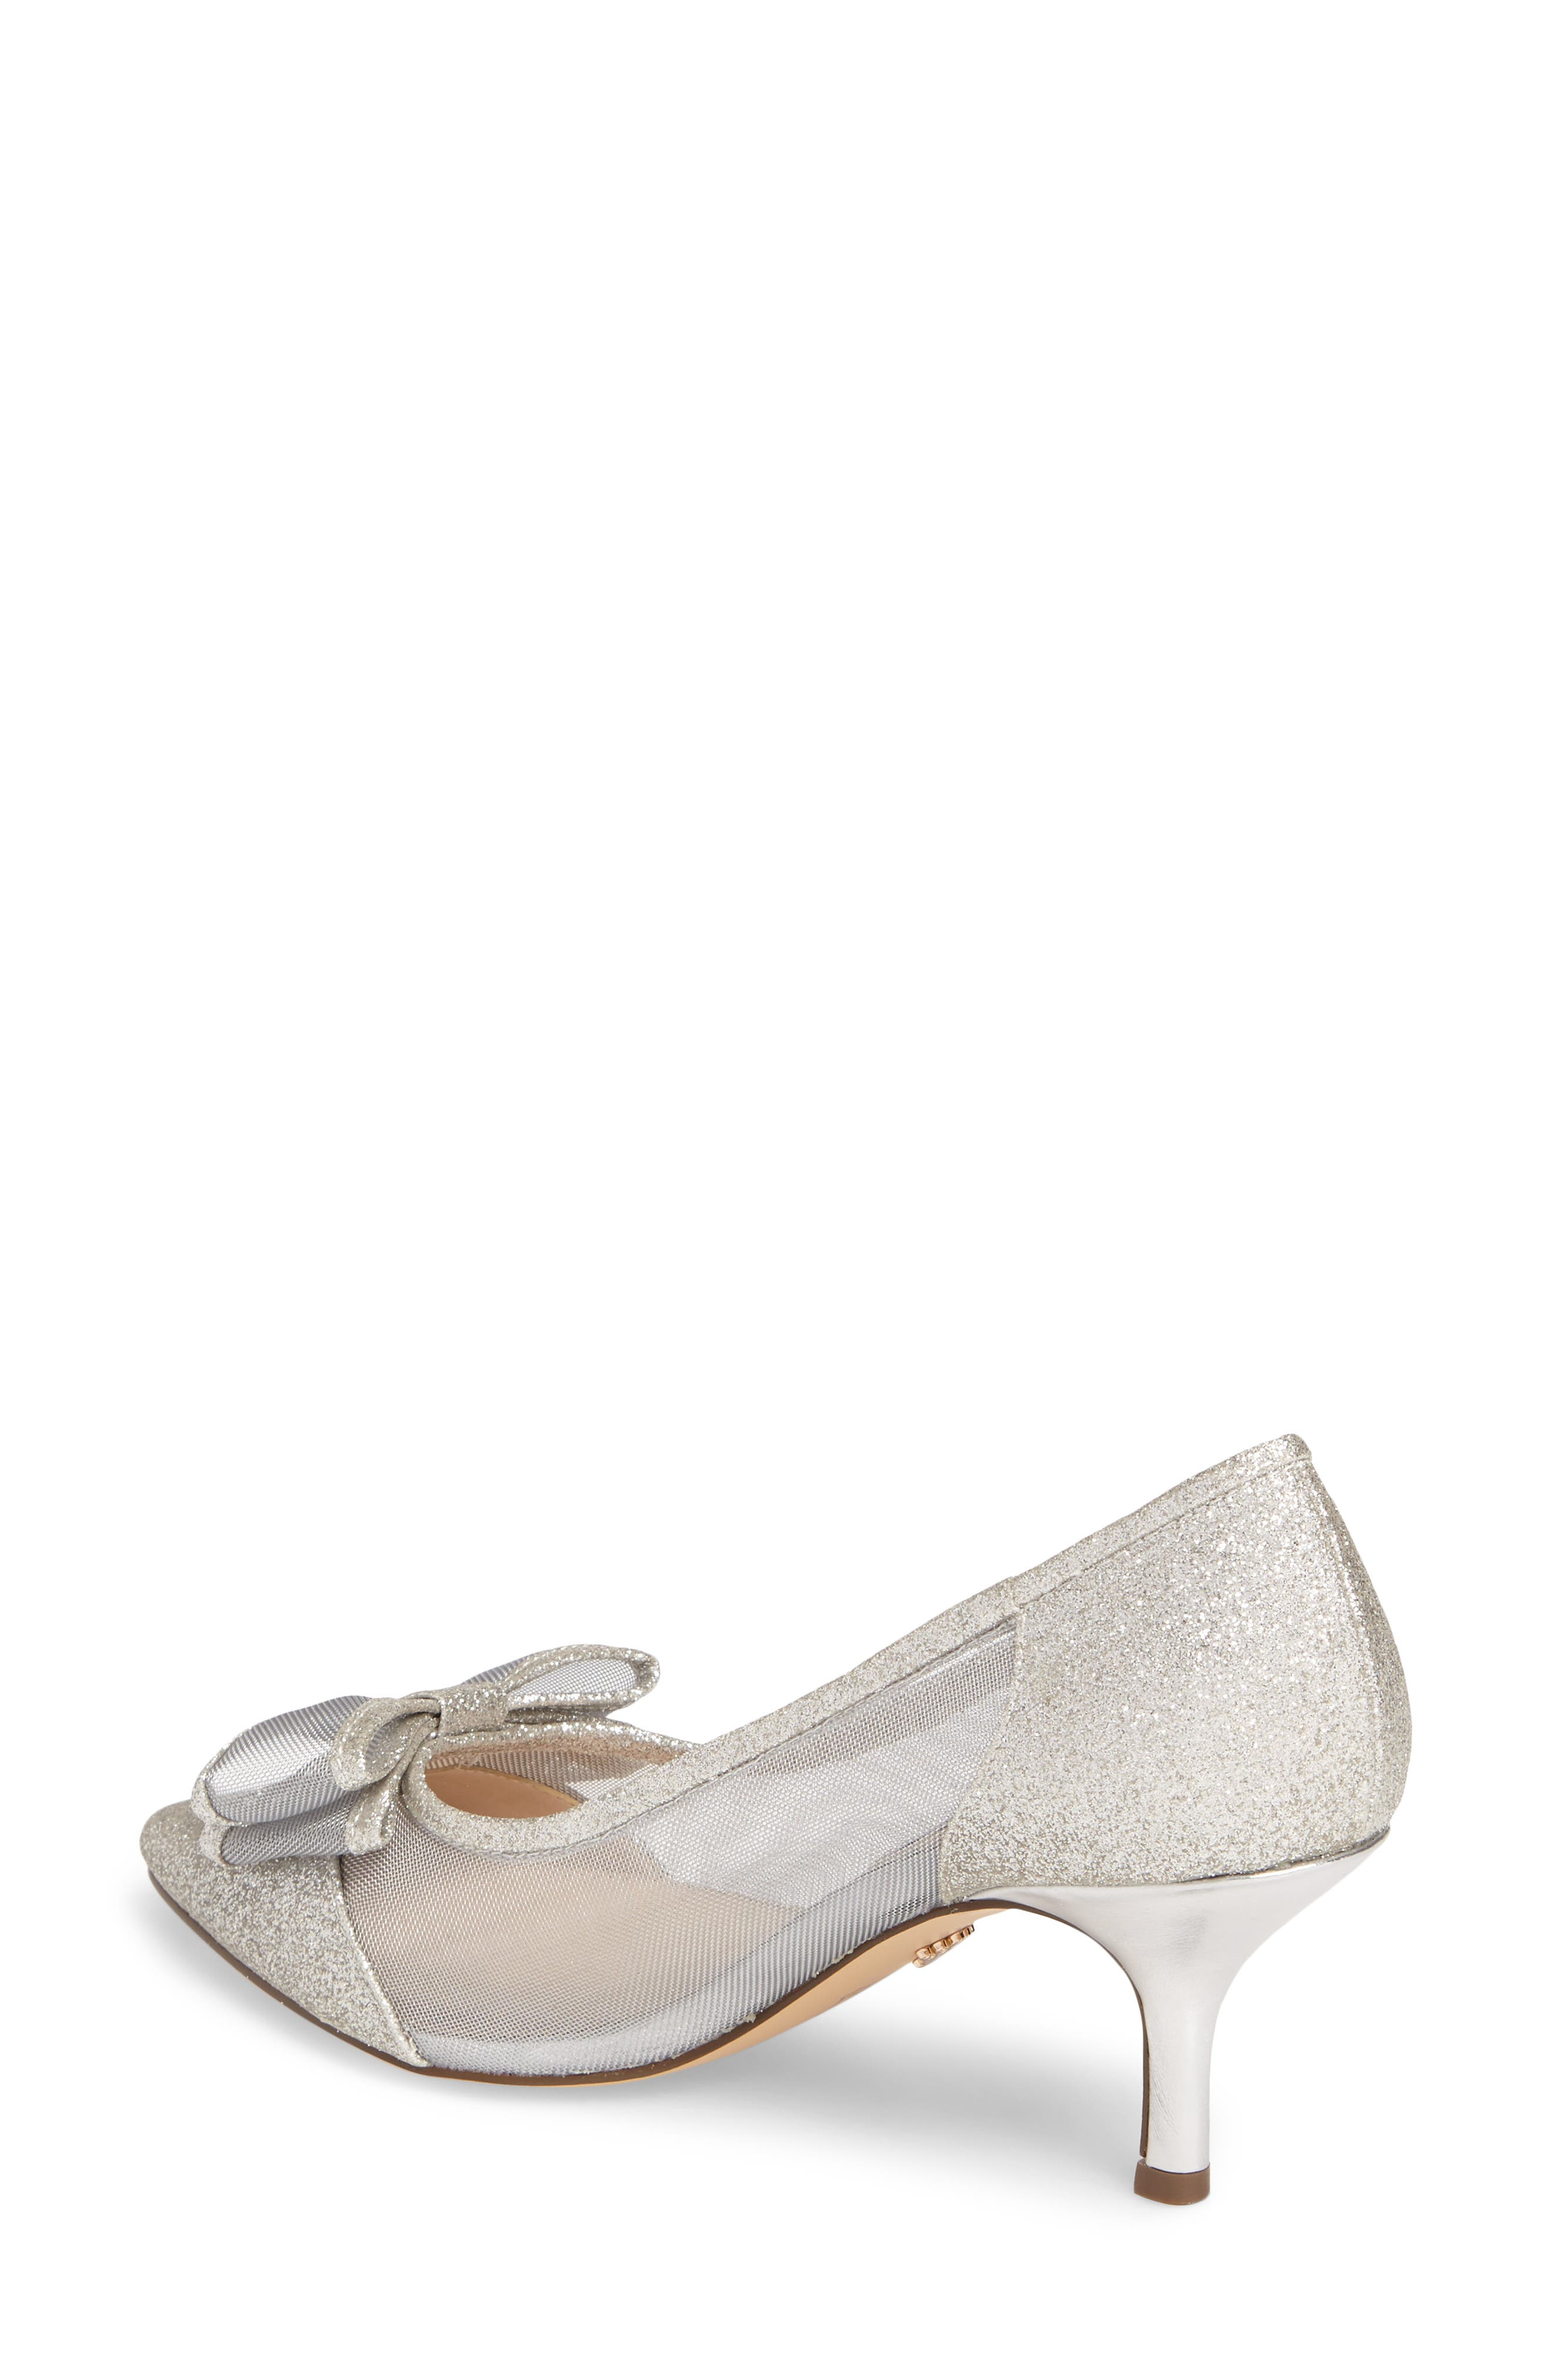 NINA, Bianca Pointy Toe Pump, Alternate thumbnail 2, color, SOFT SILVER GLITTER FABRIC